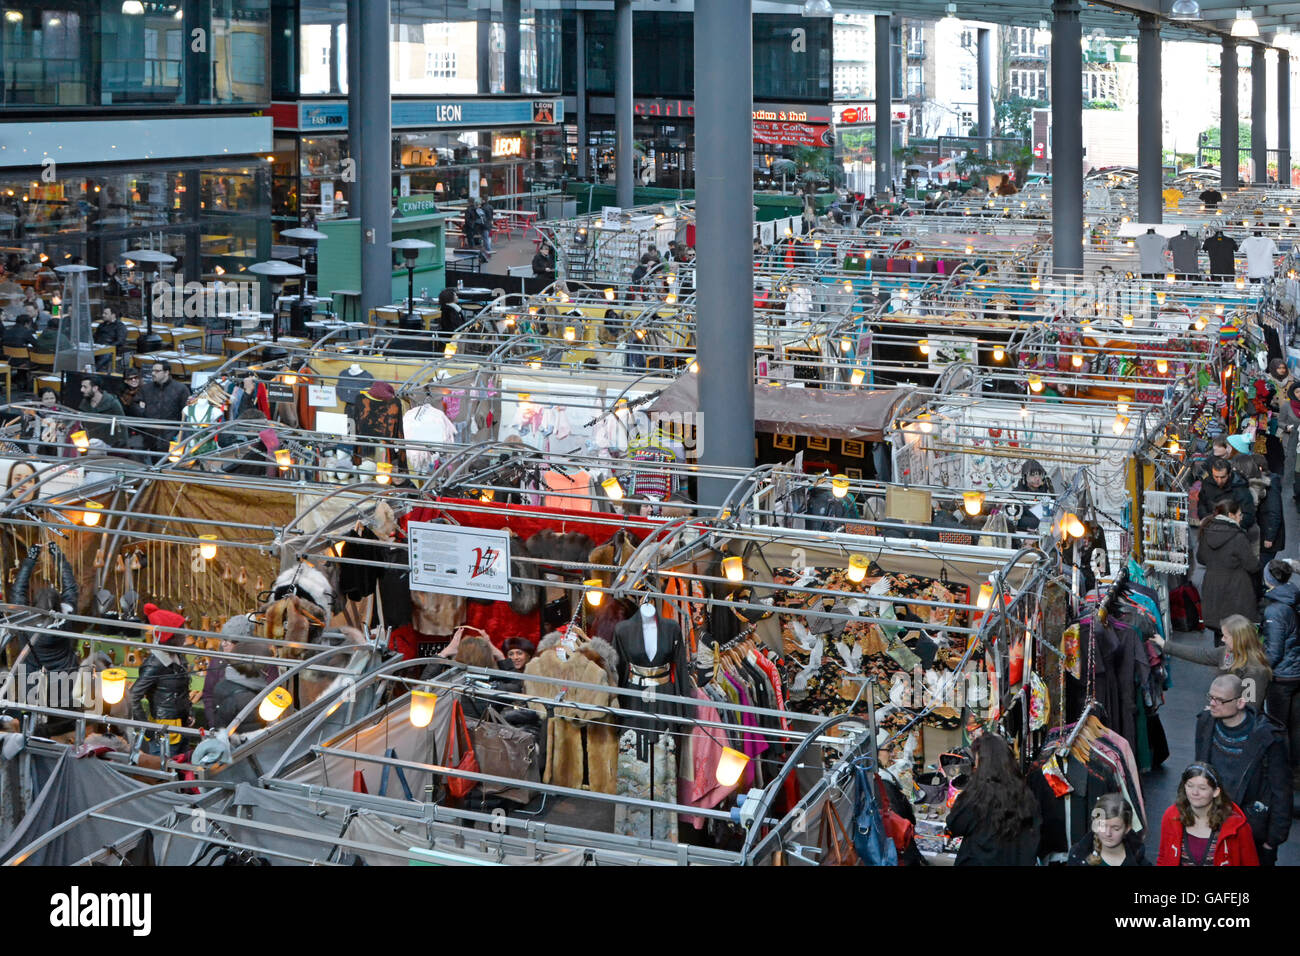 Interior view looking down from above on people shopping at stalls in the The Old Spitalfields covered indoor market - Stock Image